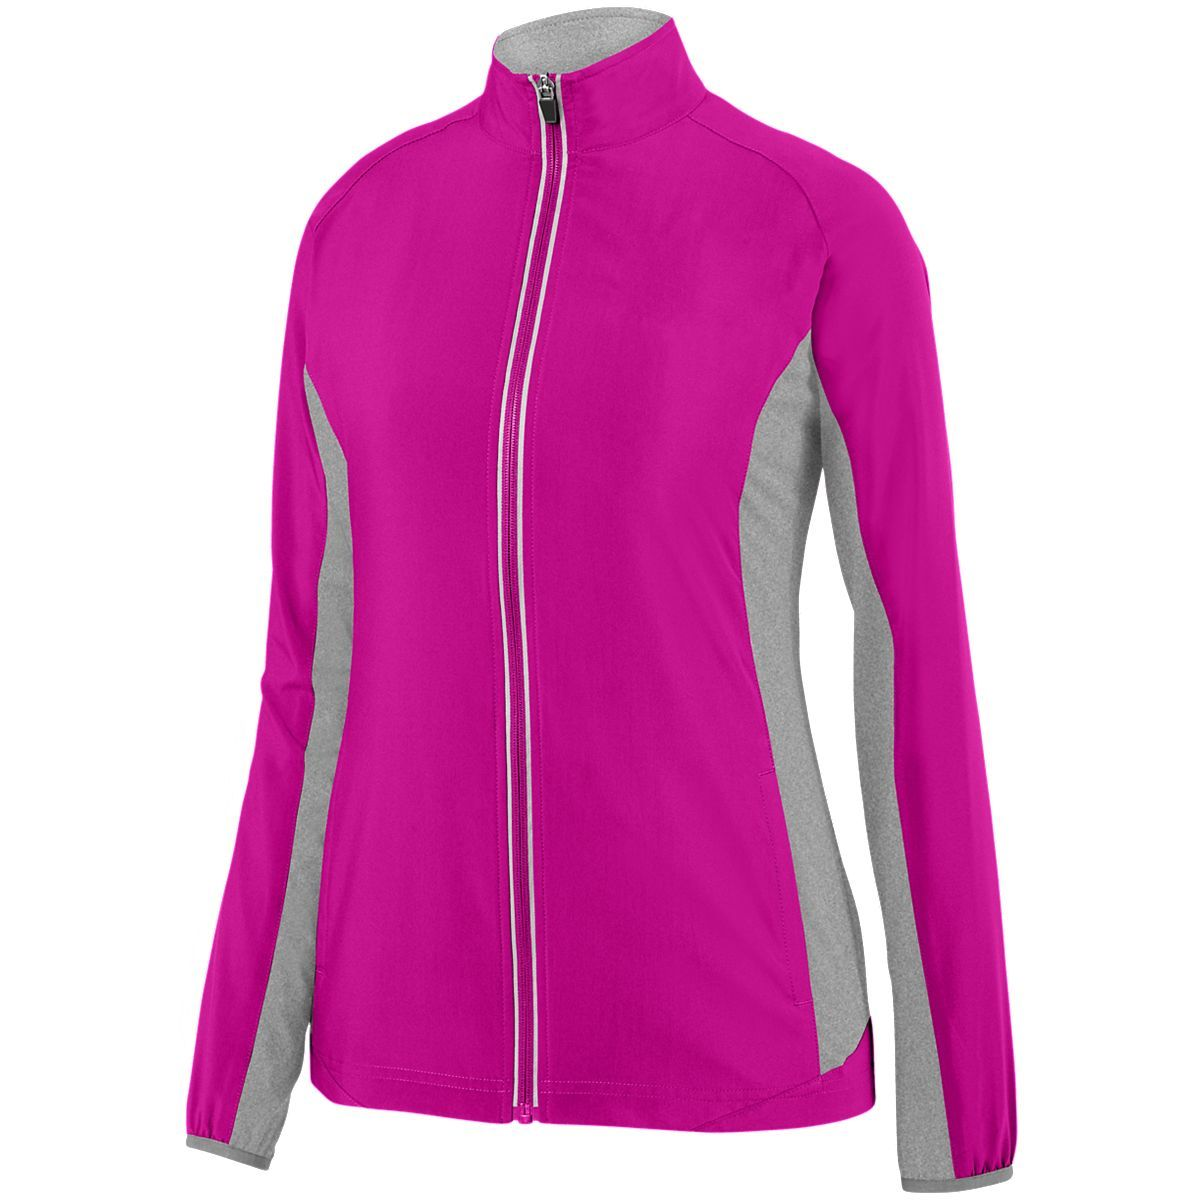 Ladies Preeminent Jacket - POWER PINK/GRAPHITE HEATHER